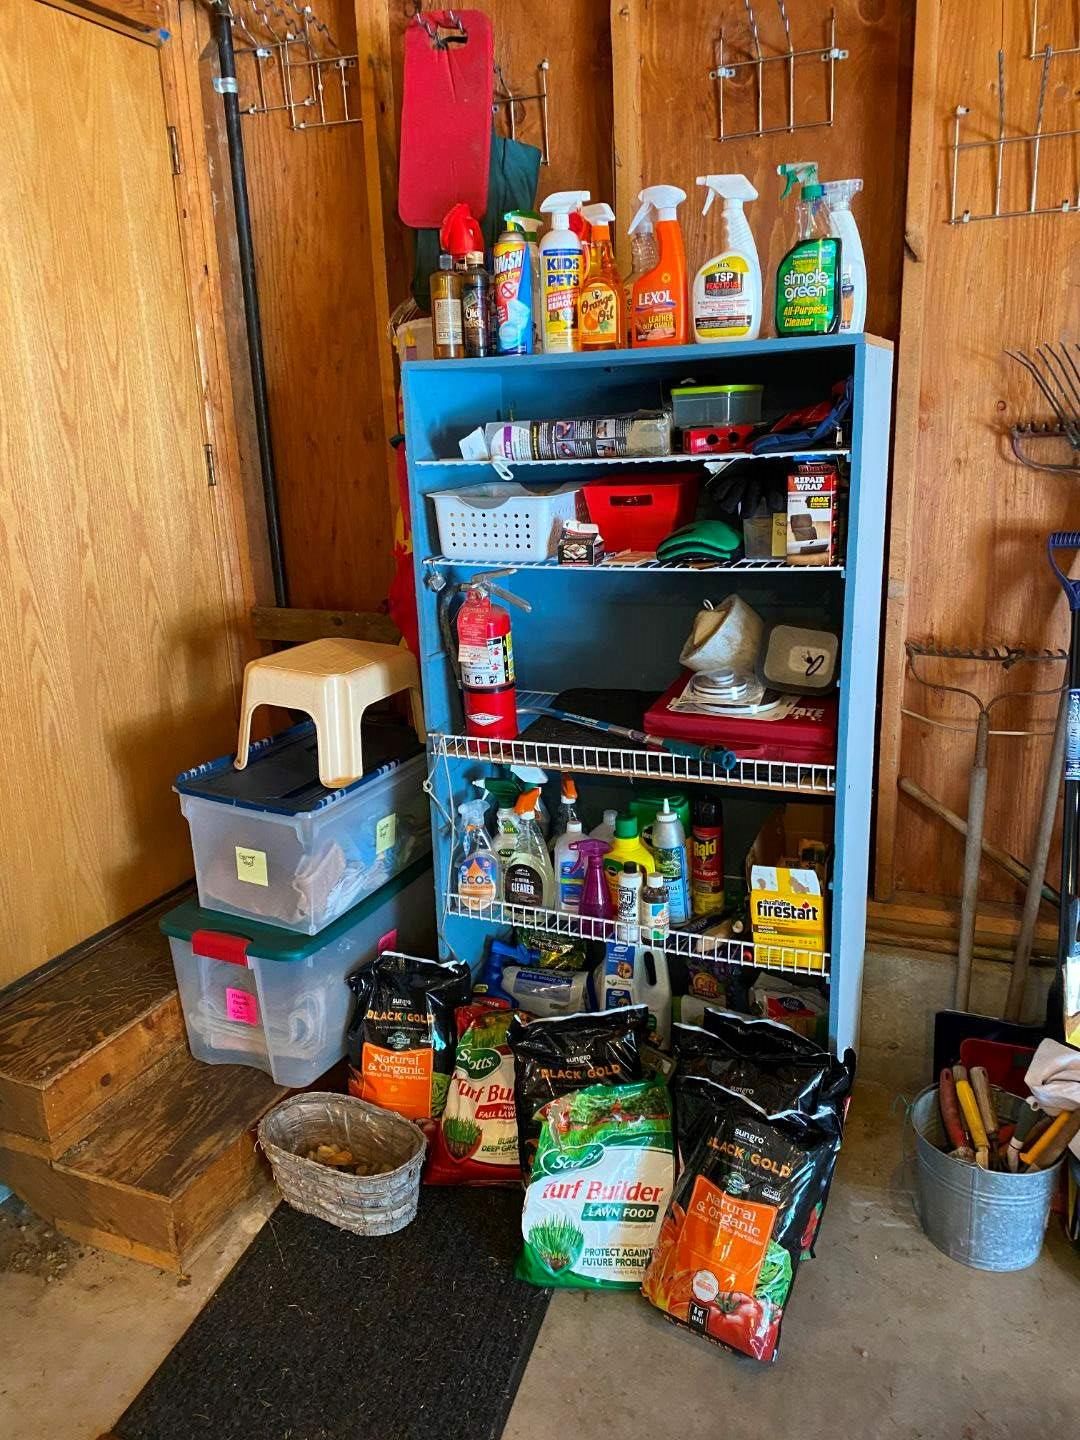 Lot # 248 - Shelf Full of Gardening Fertilizers, Chemicals, Fire Starters, Moving Blankets, Garage Rags & More -(Shelf Included) (main image)